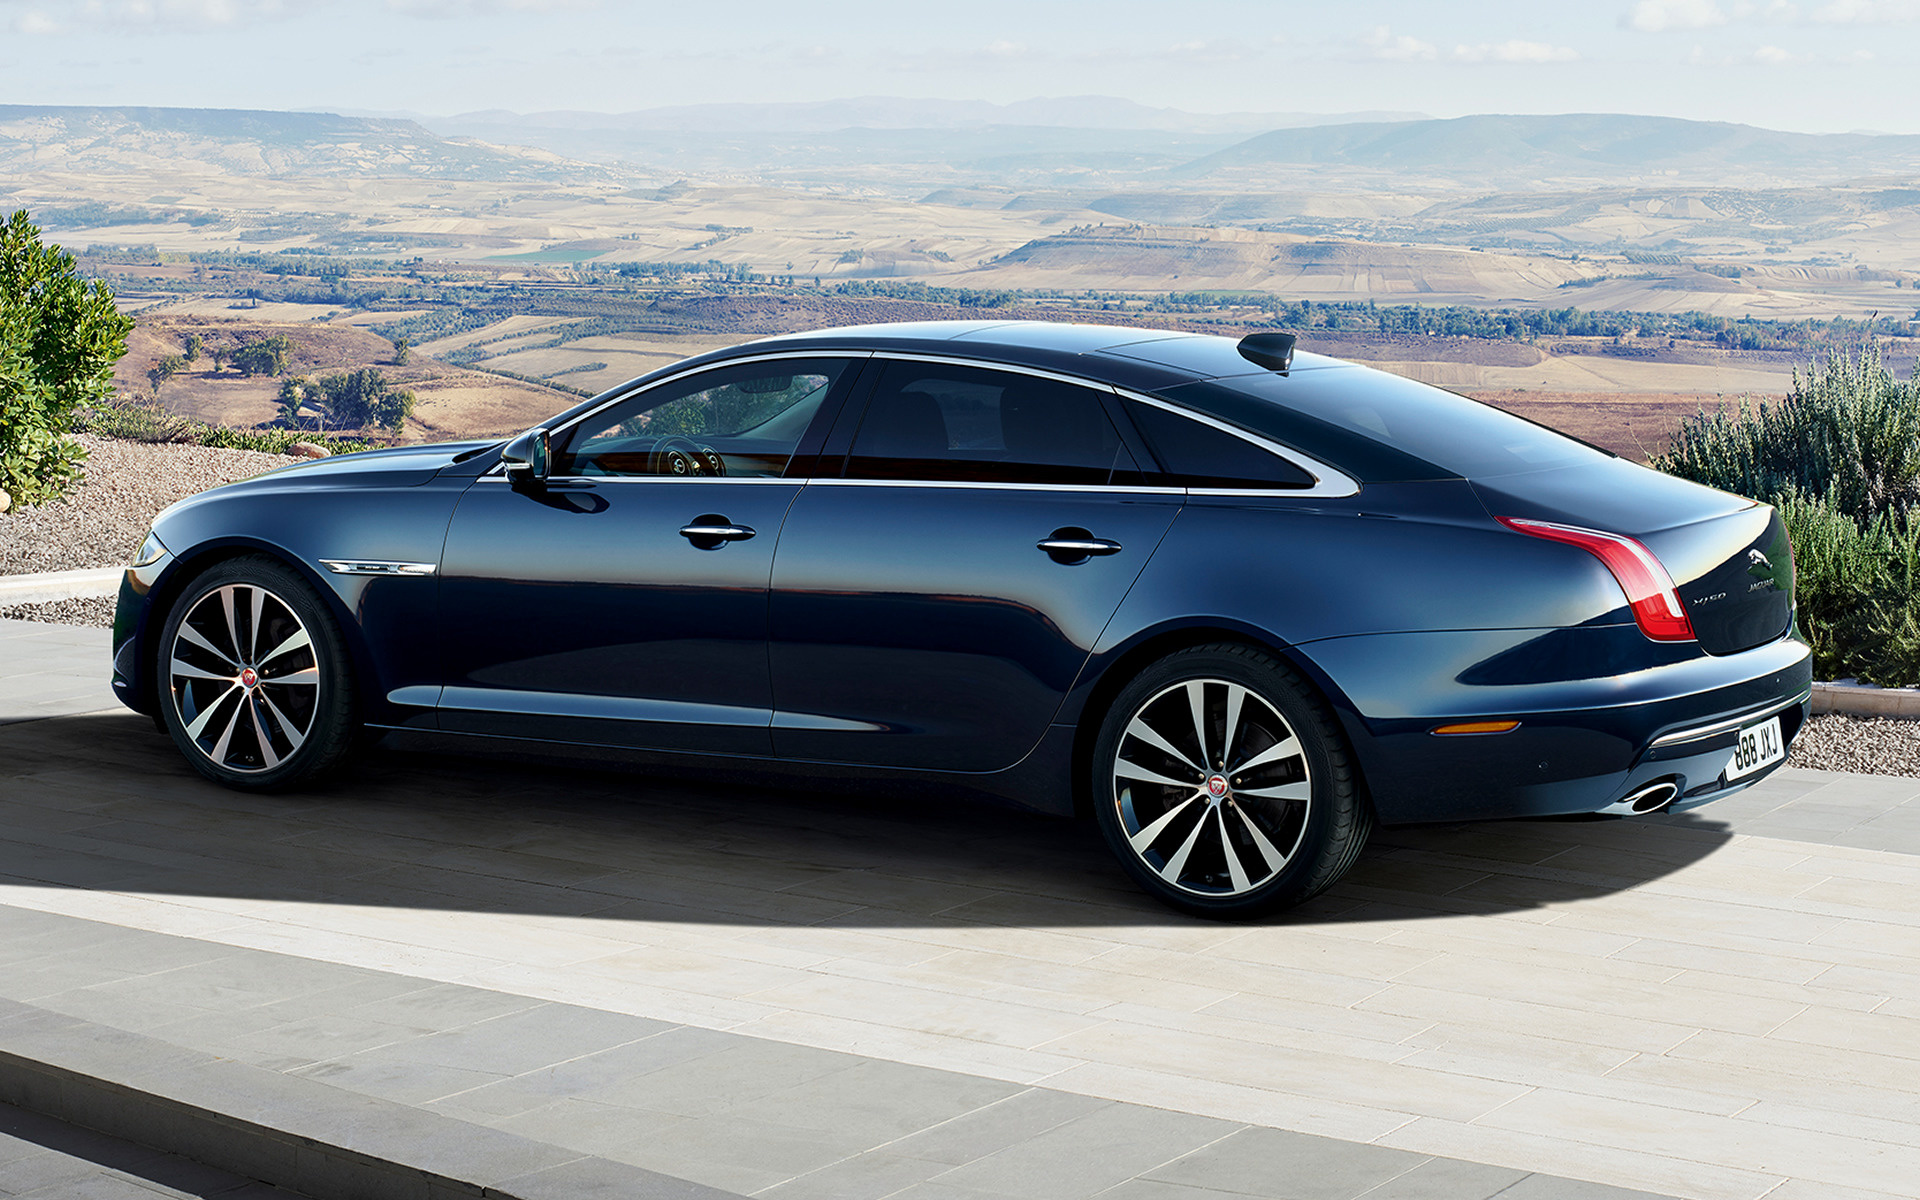 2018 Jaguar XJ50 [LWB] - Wallpapers and HD Images | Car Pixel